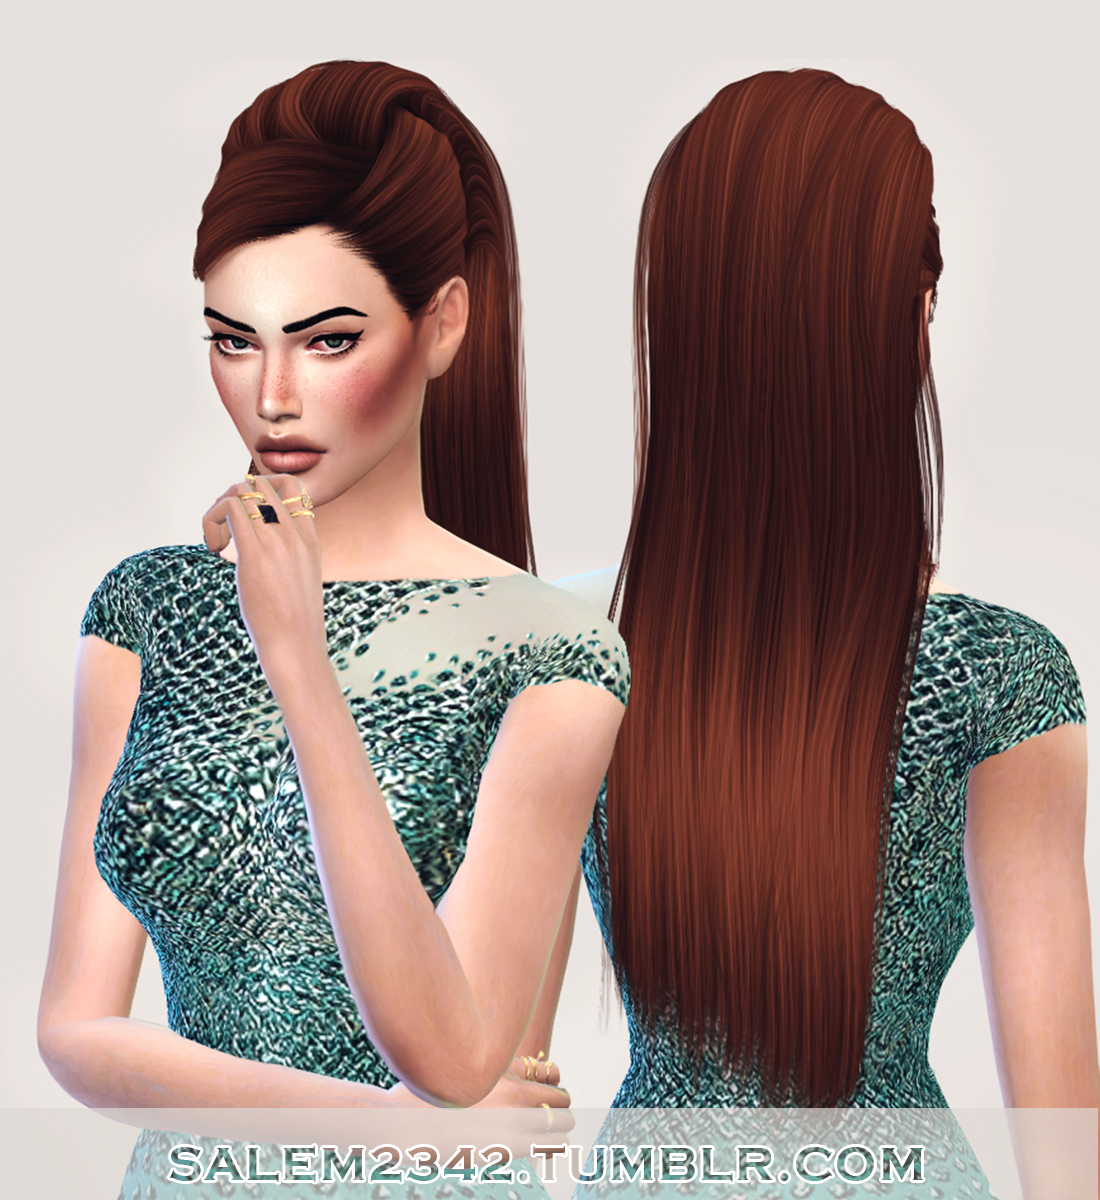 Sims 4 Hairstyles: Salem2342: Stealthic`s Reprise Hair Retextured